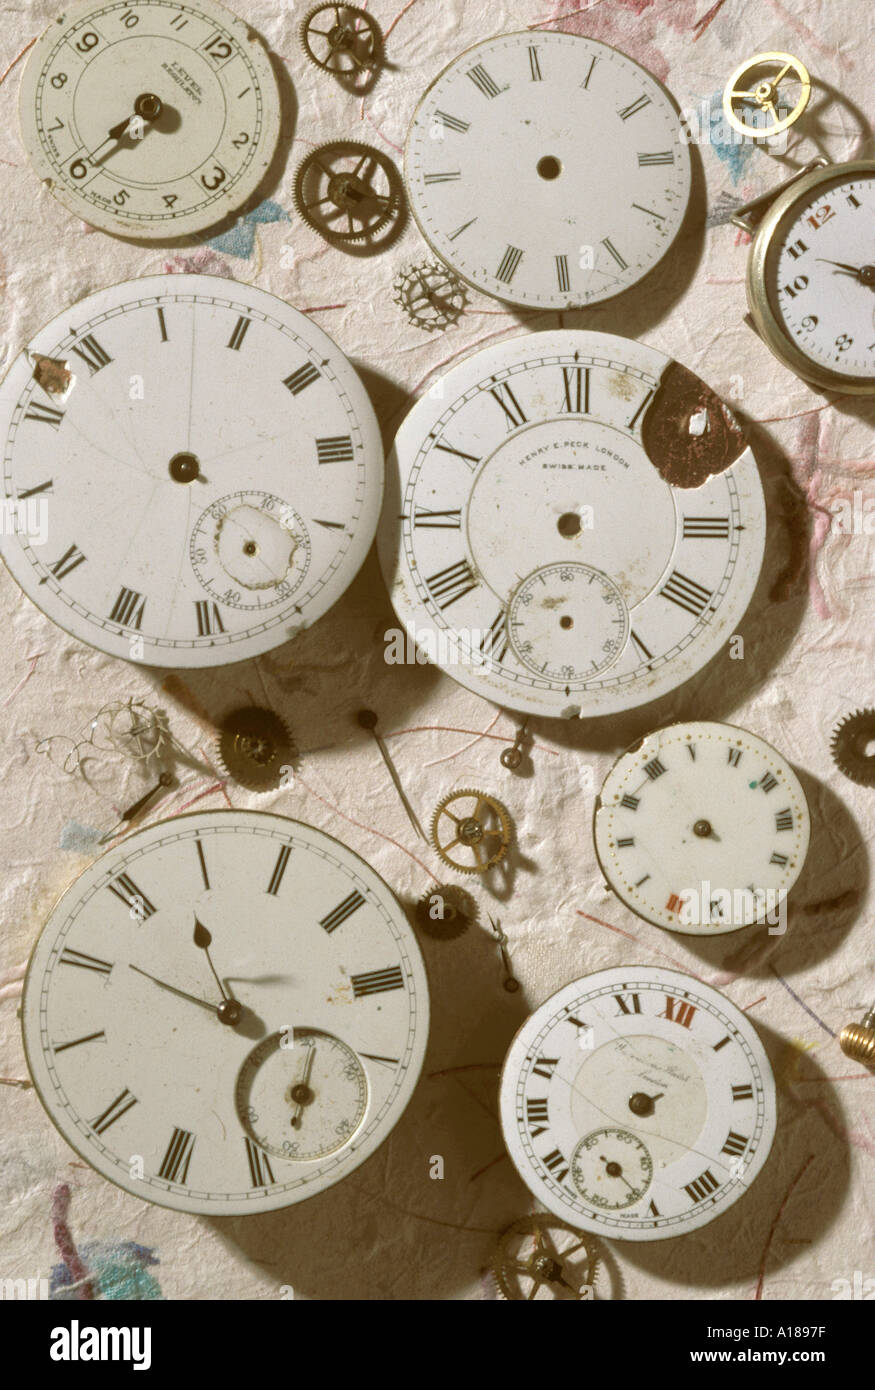 Old watch faces - Stock Image